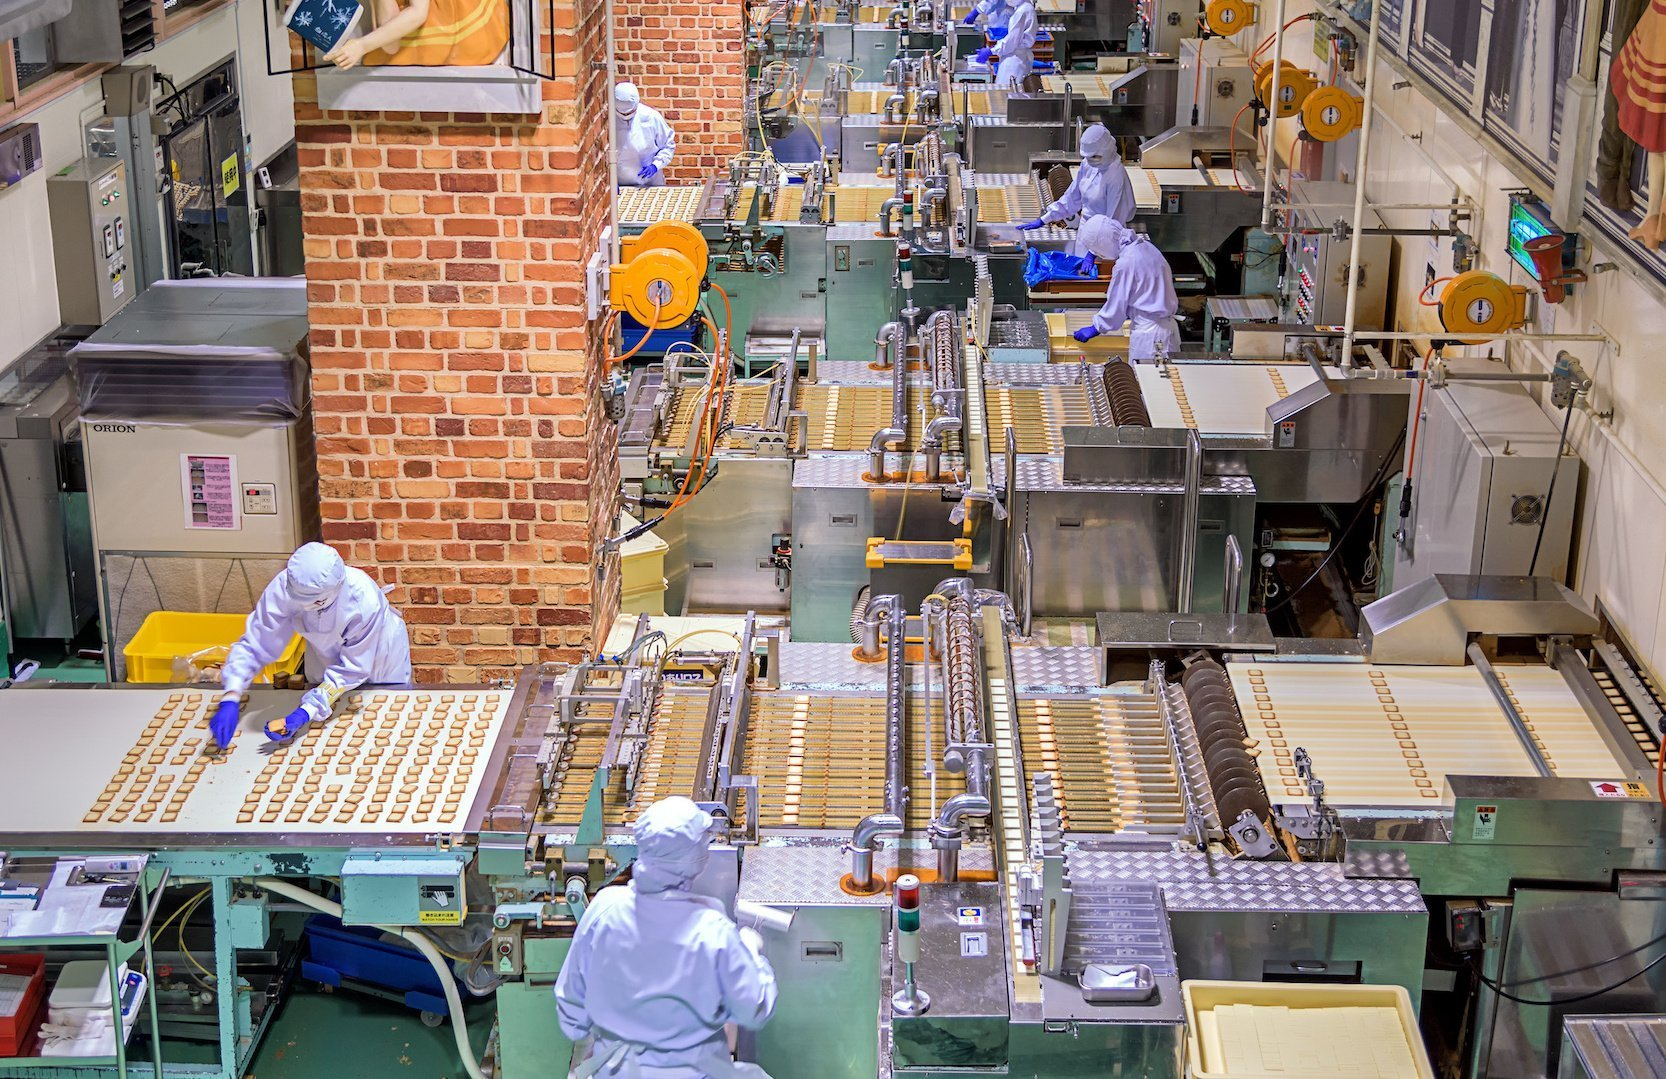 Food Industry S Focus On Gmp 21 Cfr Part 110 117 Food